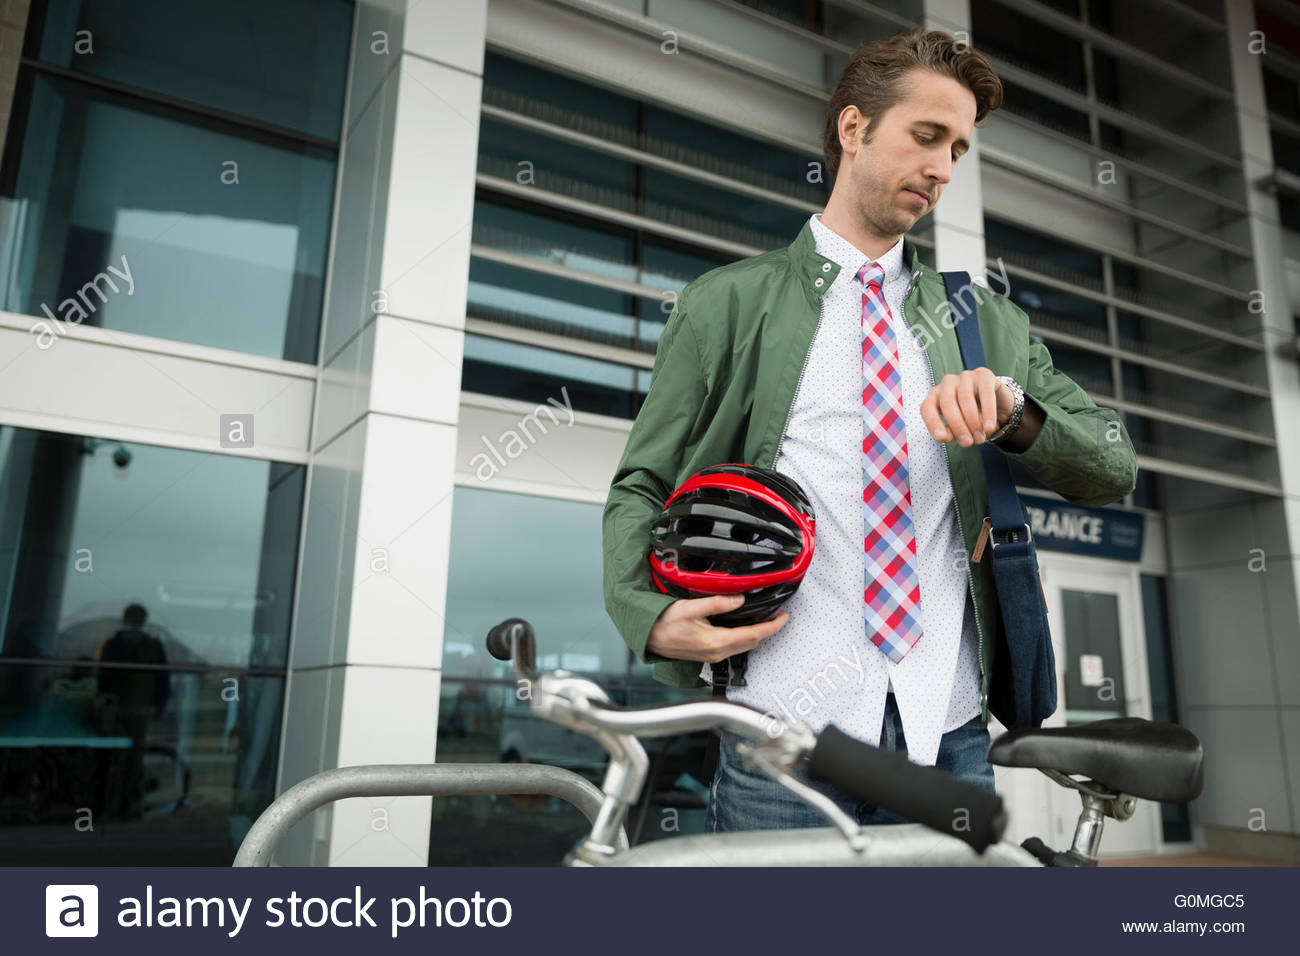 Man with bicycle and helmet checking wristwatch - Stock Image